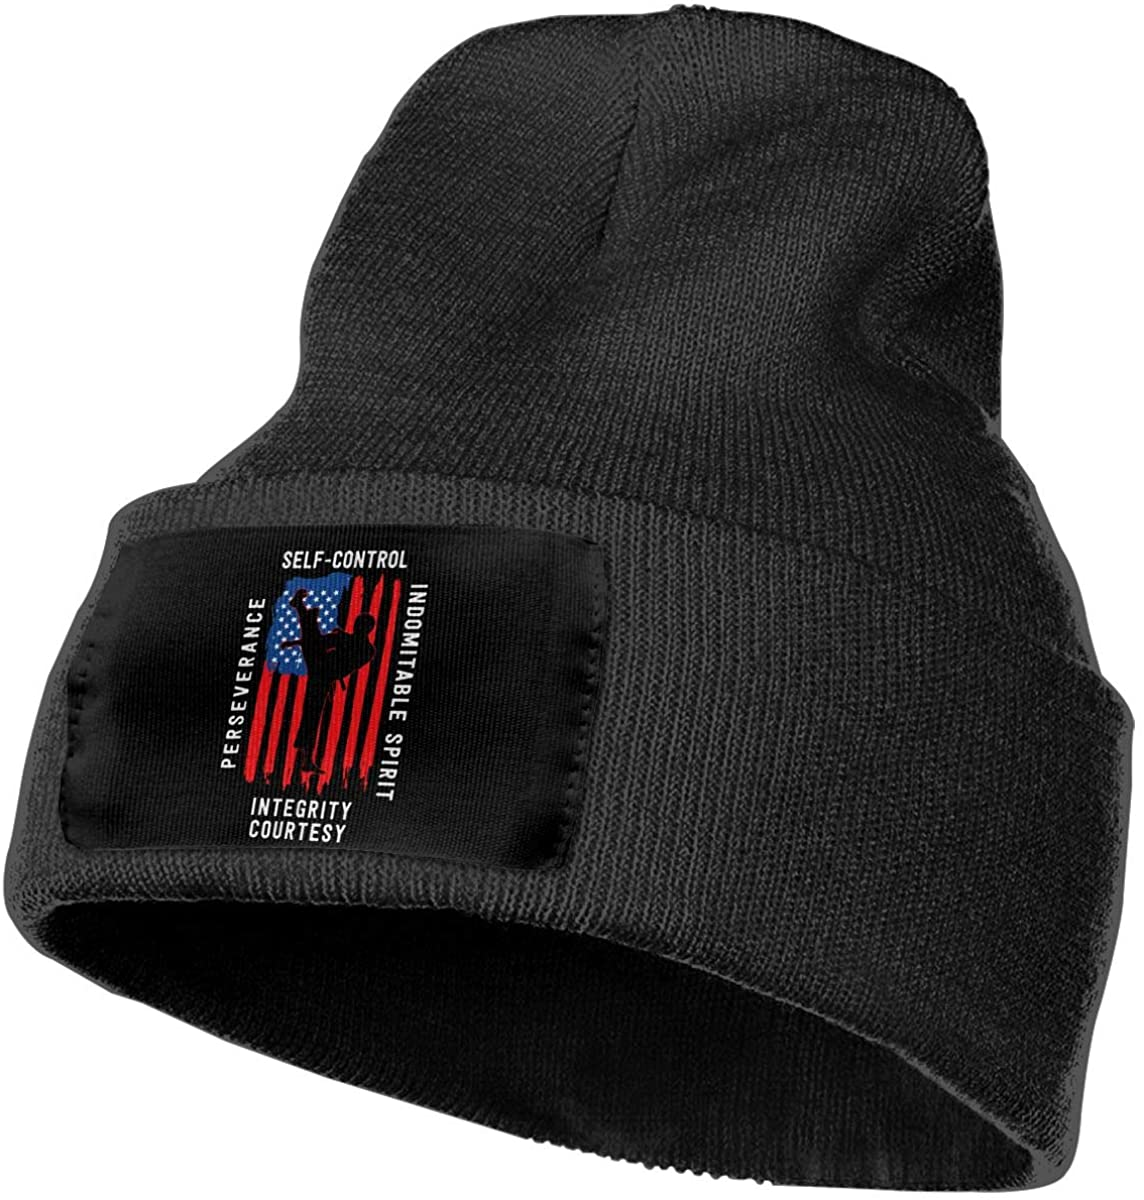 SOURCE POINT Unisex Beanie Hat Taekwondo Us Flag Knit Hat Cap Skull Cap